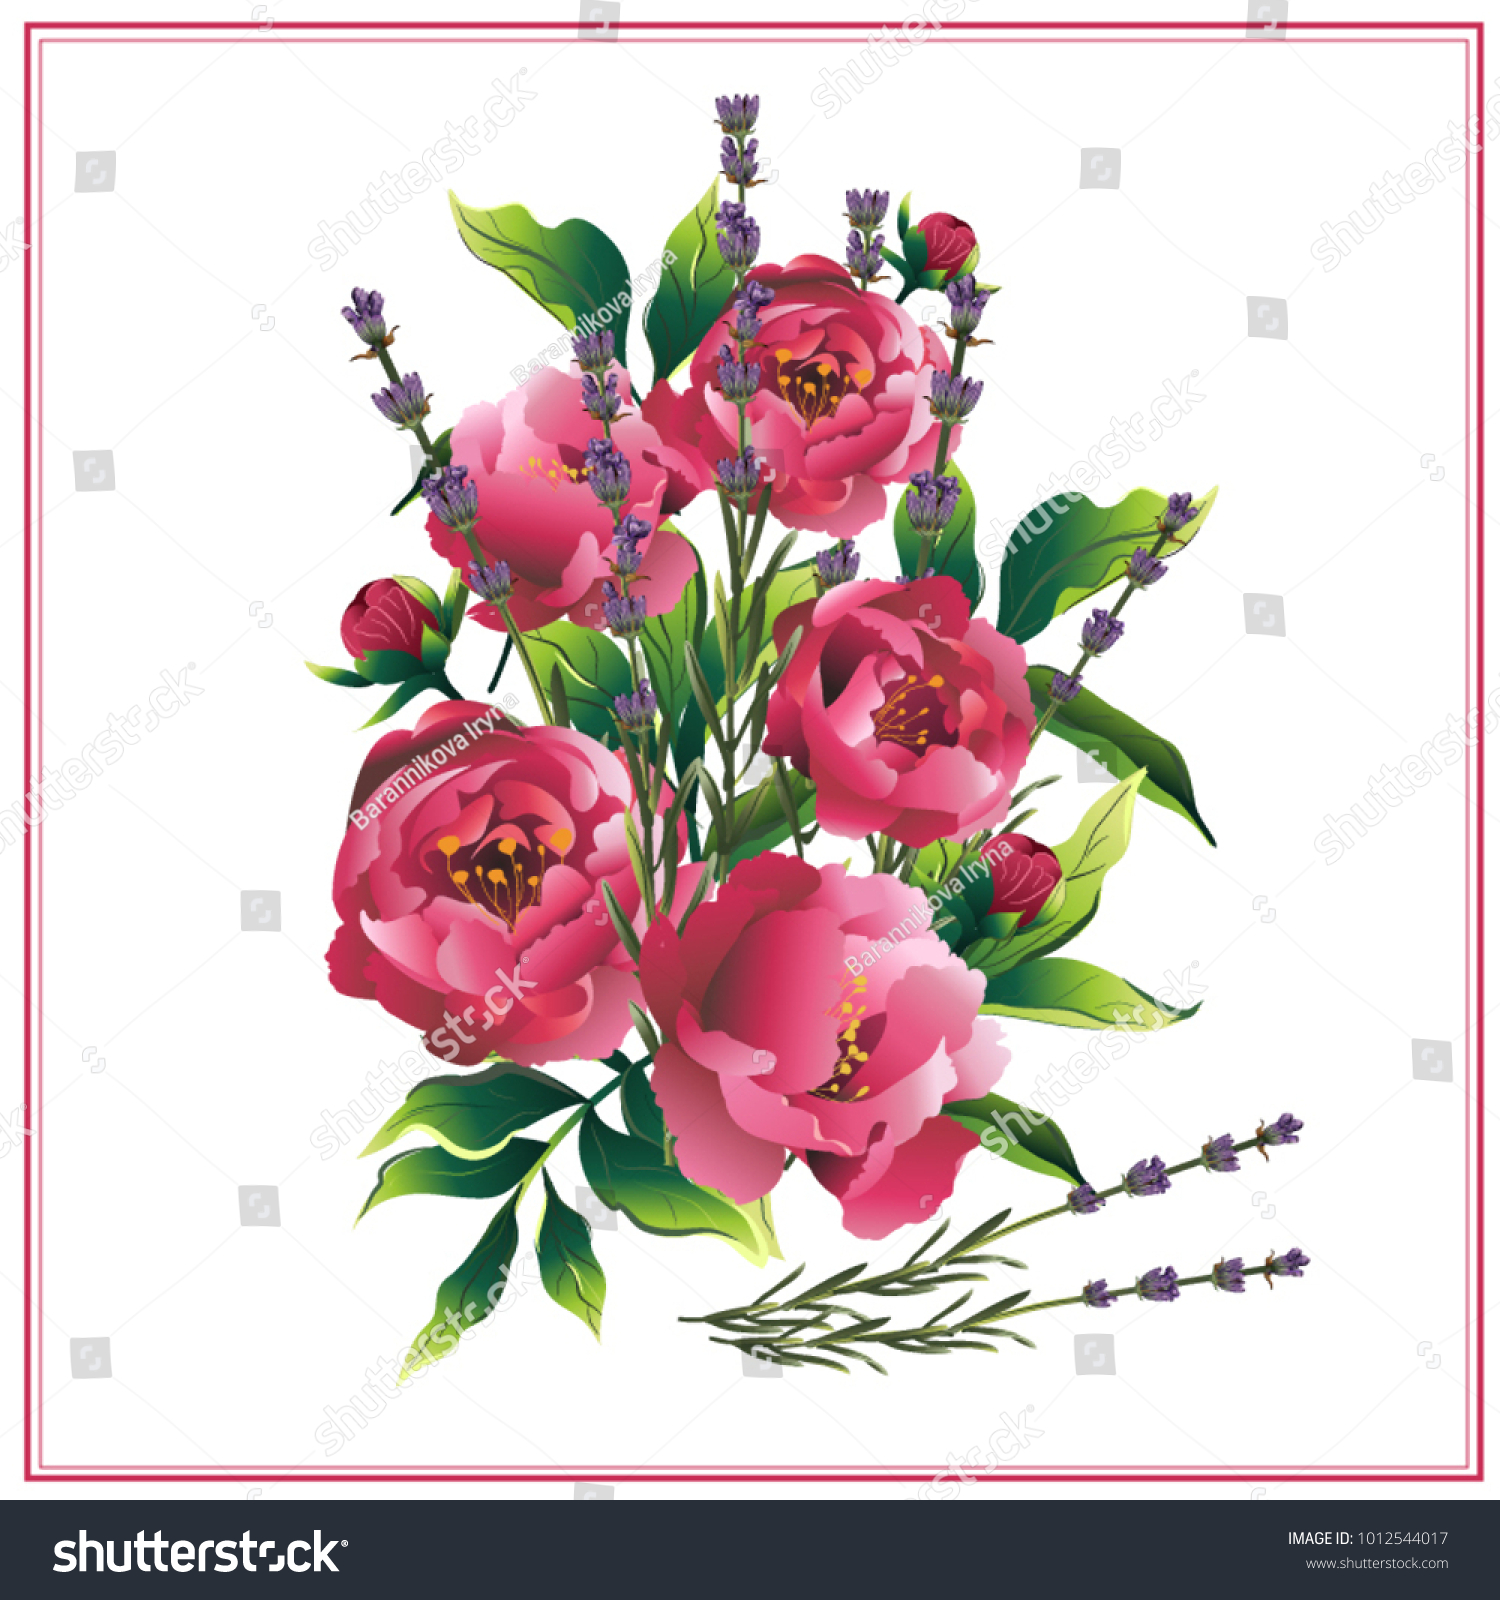 Peonies Lavender Flower Bouquet Greeting Card Stock Vector ...